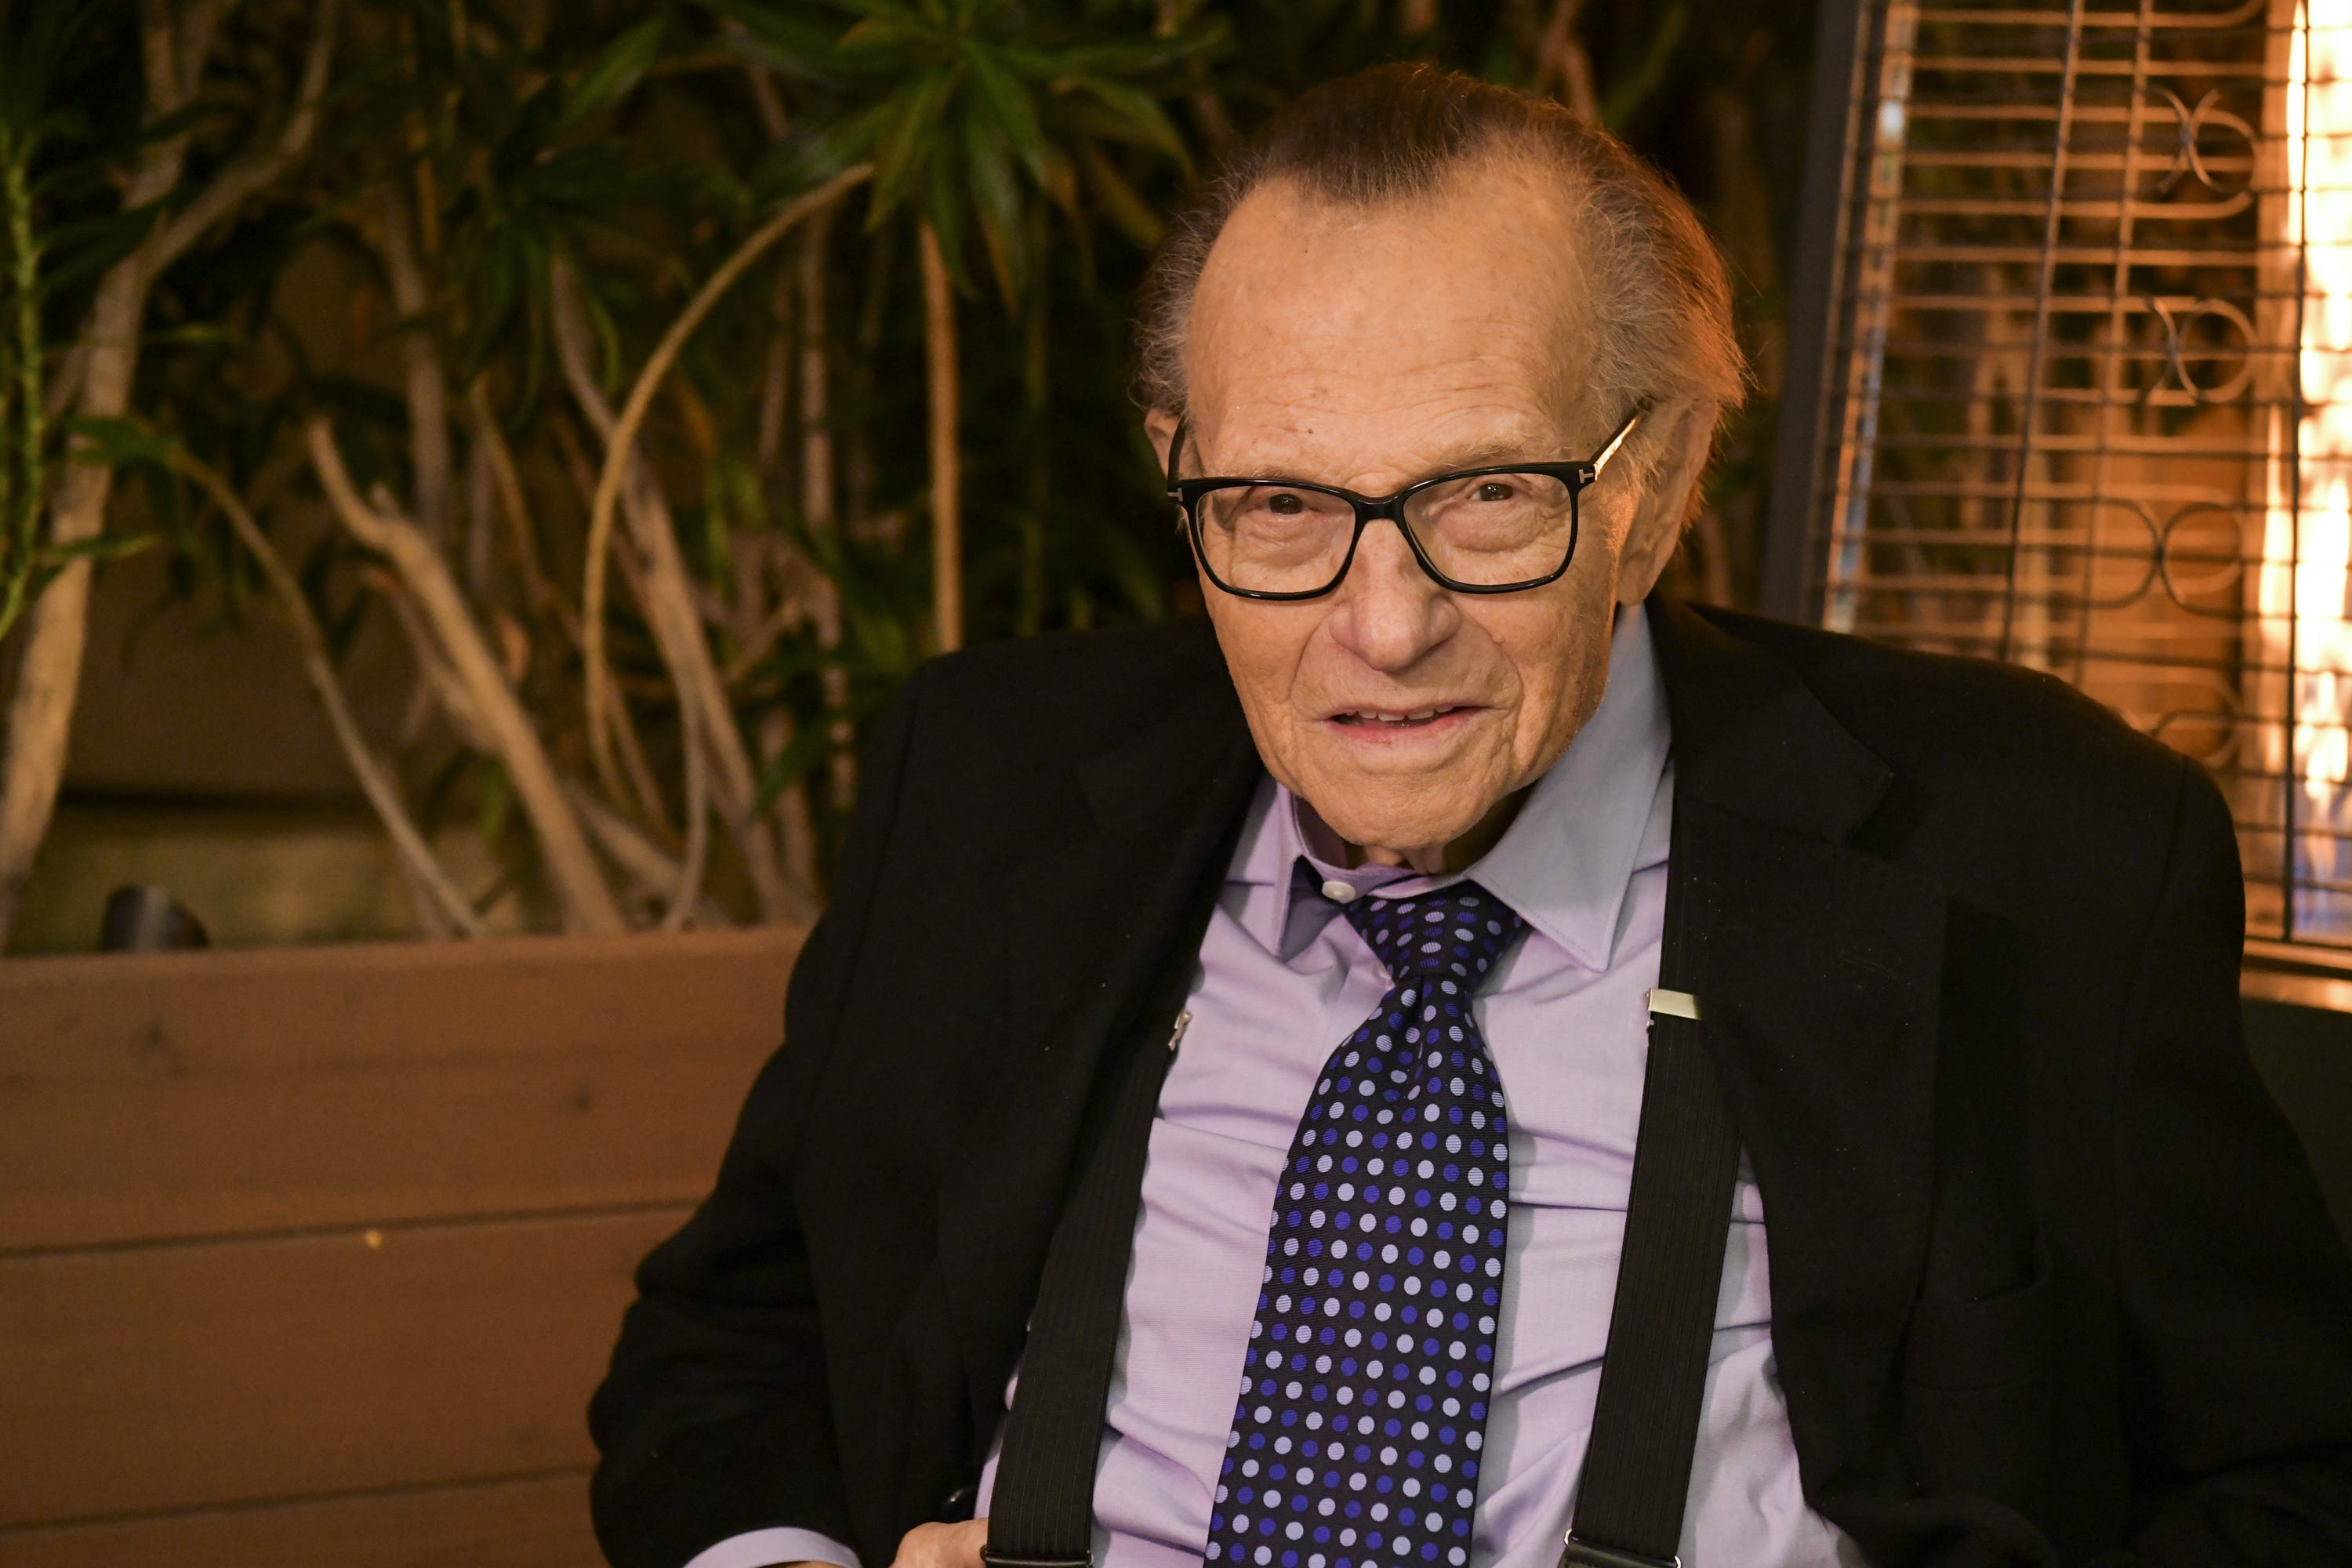 TV is less interesting without you : Andrew Cuomo, Oprah, Bill Clinton, more react to Larry King death